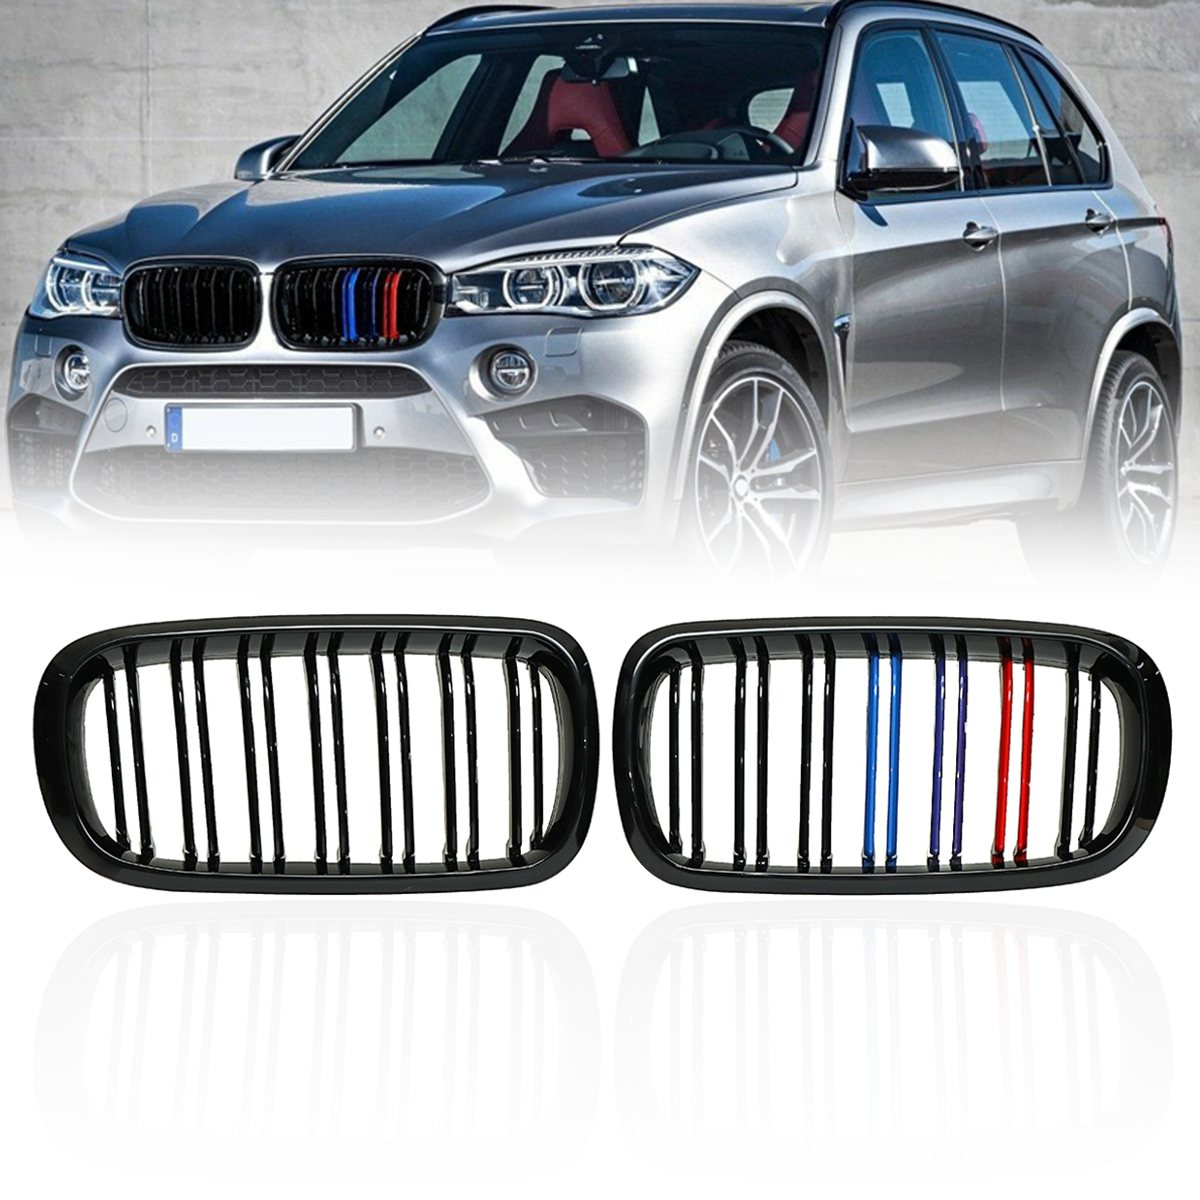 #27-F15MFG3C Pair Matte Gloss Black M Color Front Double Slat Kidney Grille For BMW F86 F15 F16 X5 X6 X5M F85 X6M F86 2014 2015 x5 x6 m performance sport design m color front grill dual slat kidney custom auto grille fit for bmw 2015 2016 f15 f16 suv